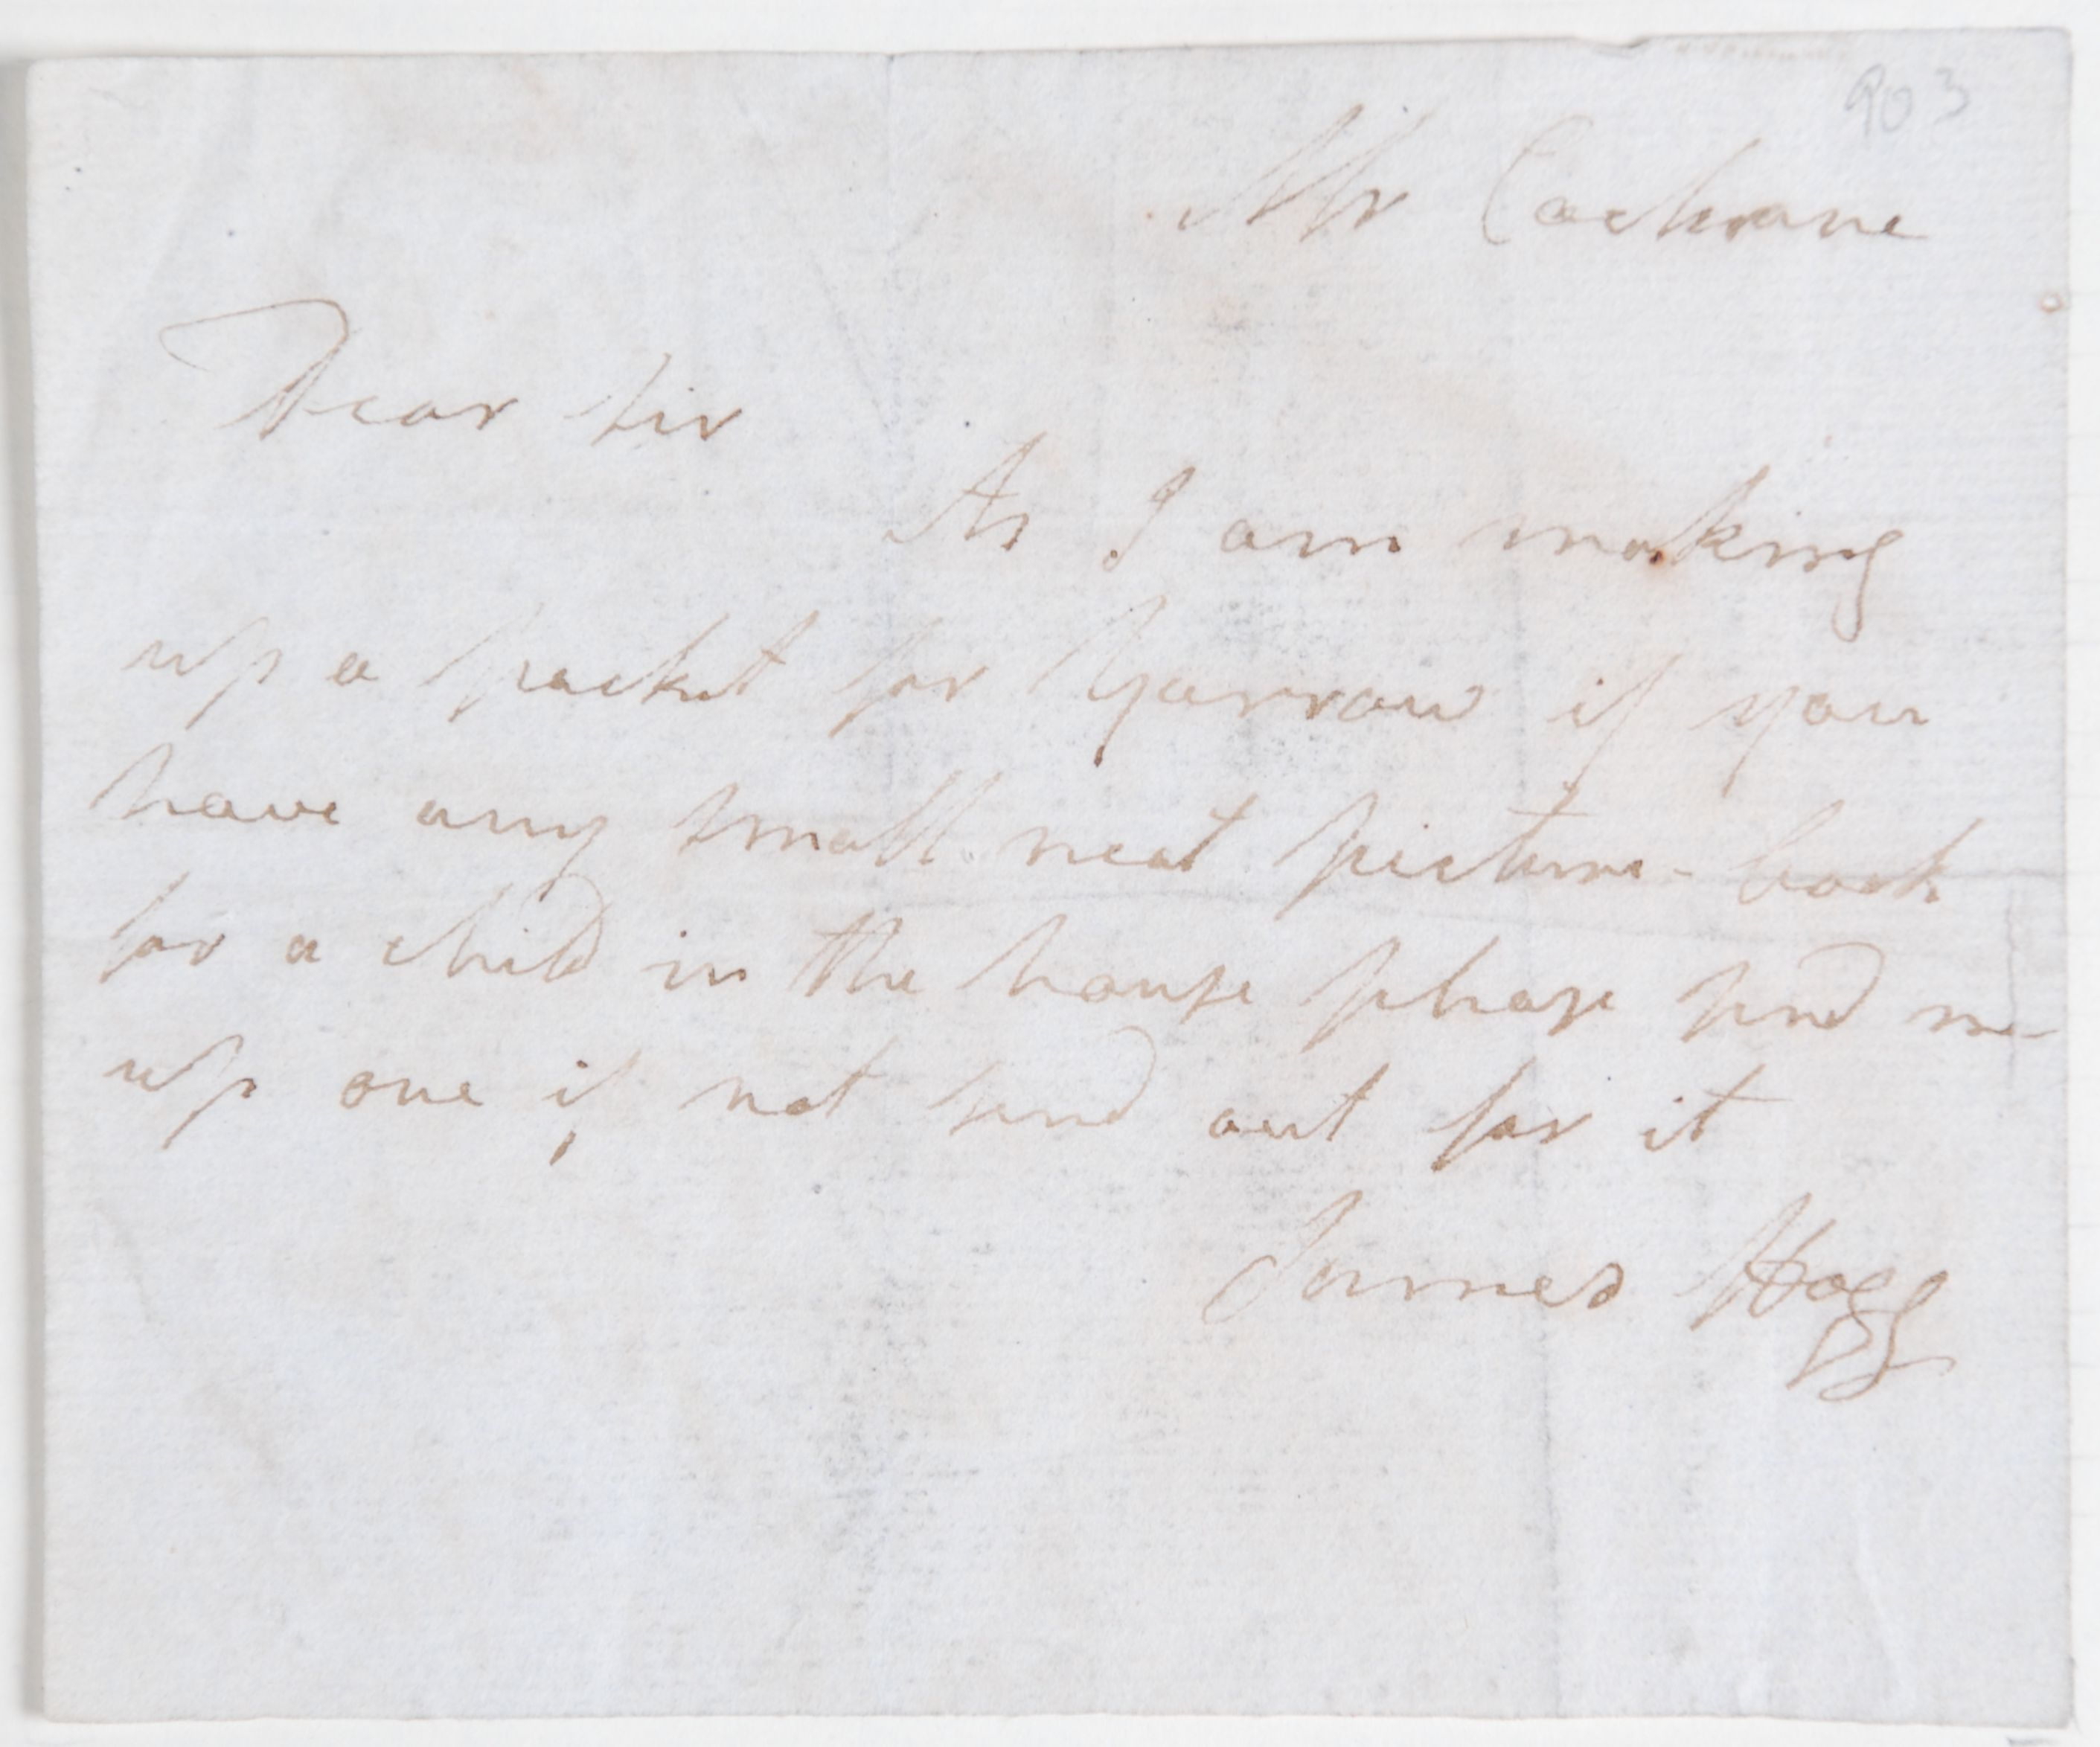 Reed Autograph Letters Album B2, no. 24: James Hogg.